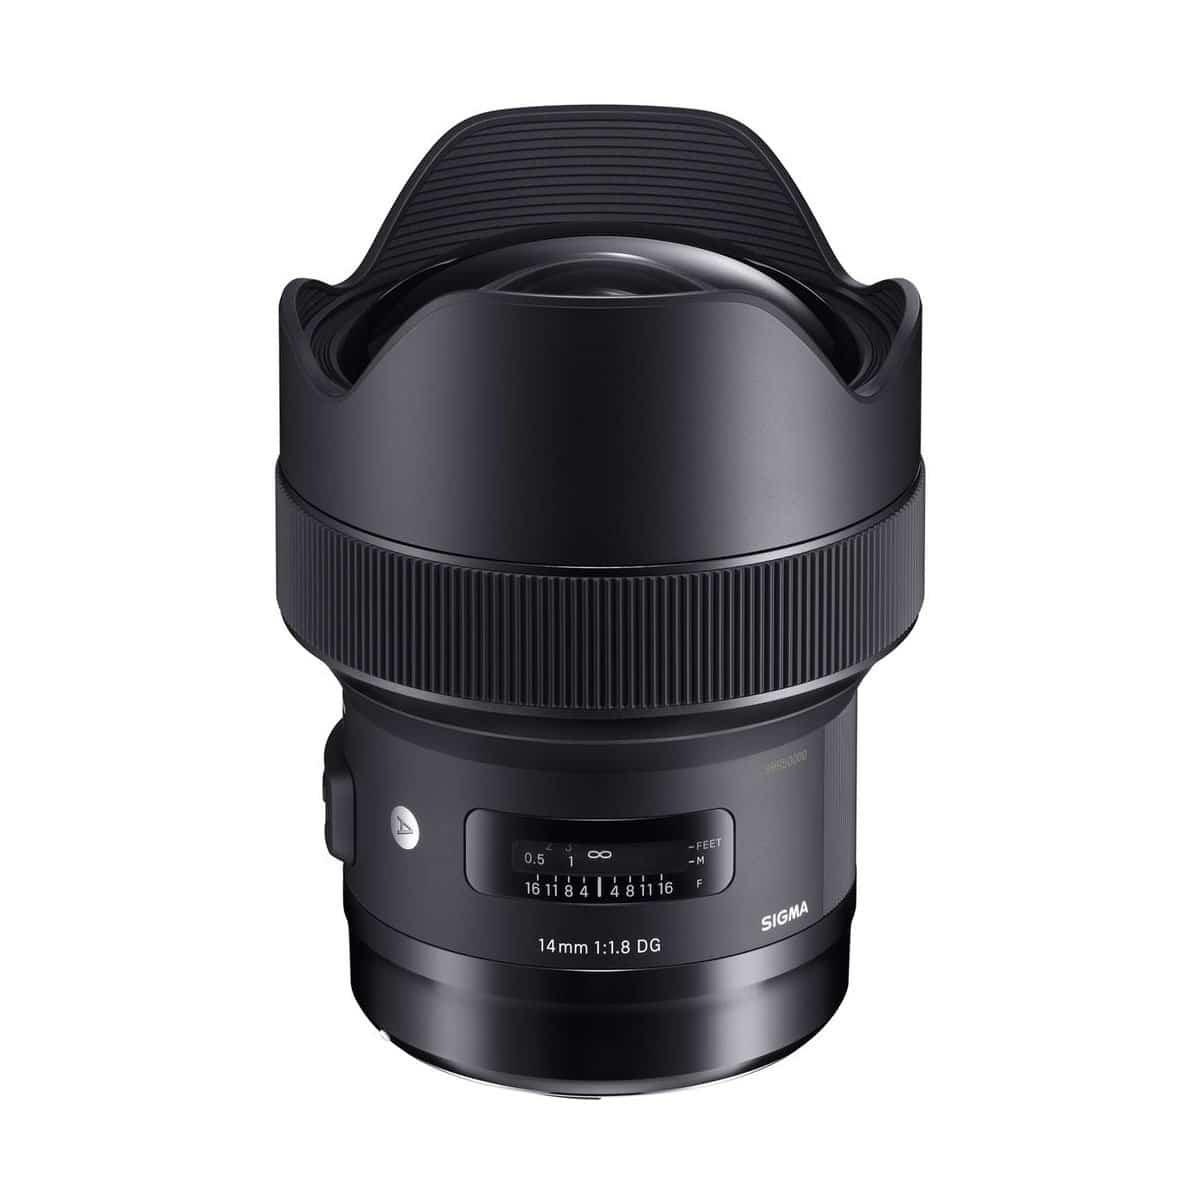 SIGMA 14mm F1.8 DG HSM Art – Nikon